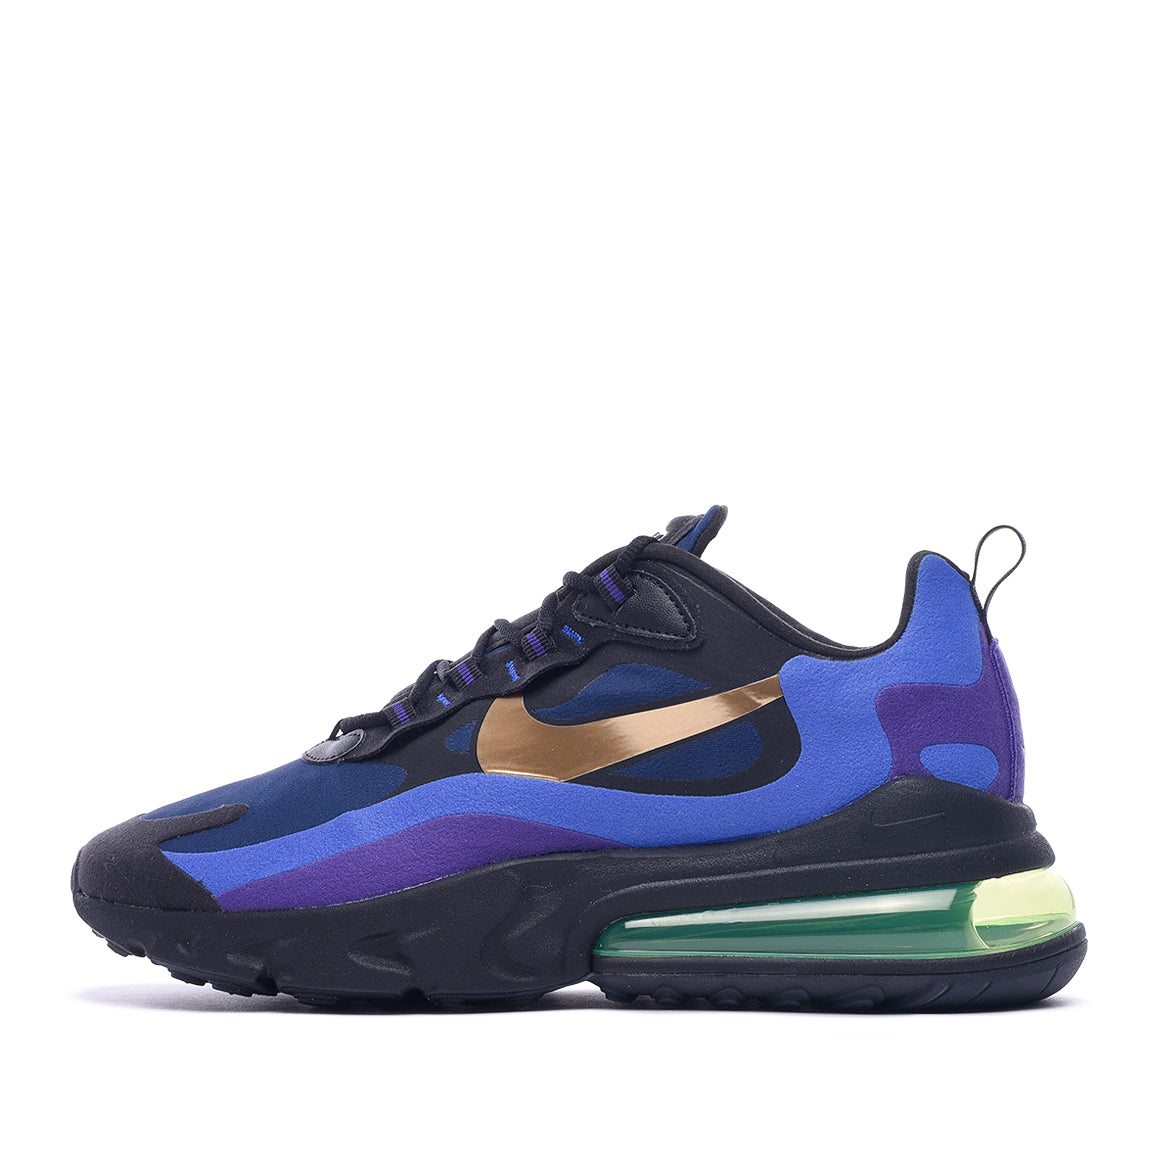 AIR MAX 270 REACT - BLACK / UNIVERSITY GOLD